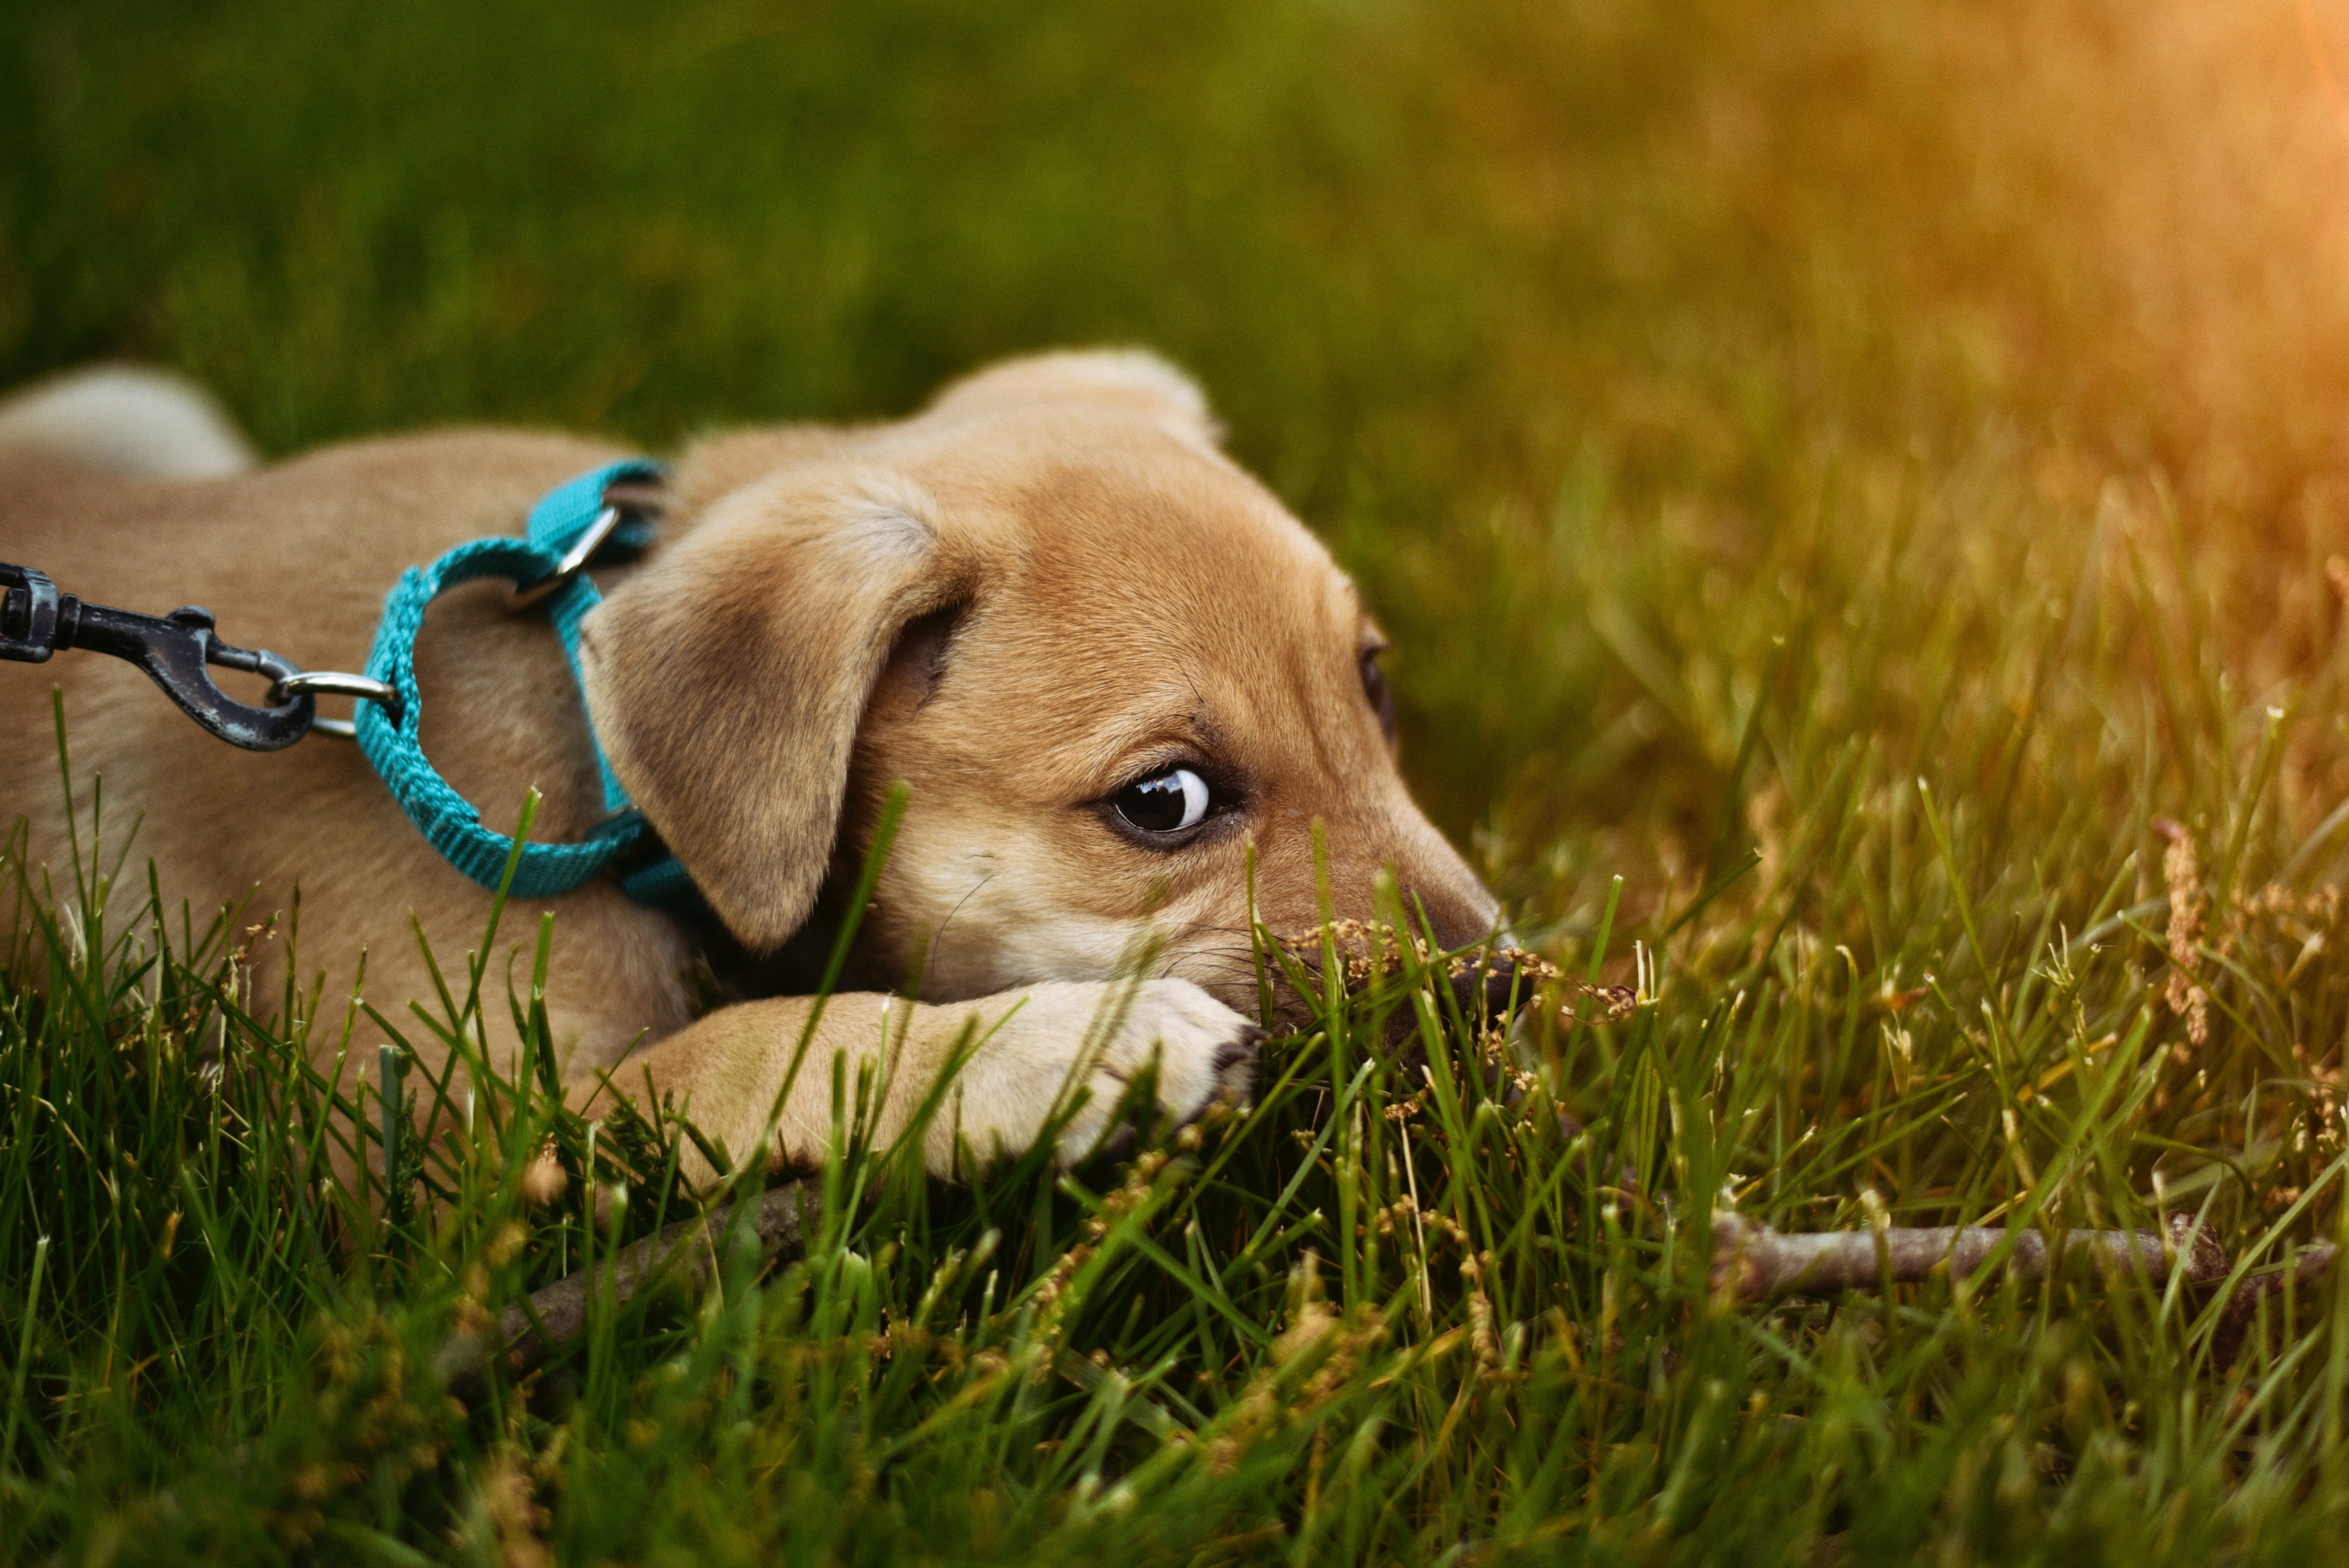 wellness-anxiety-wraps-for-dogs-what-you-need-to-know-hero-image